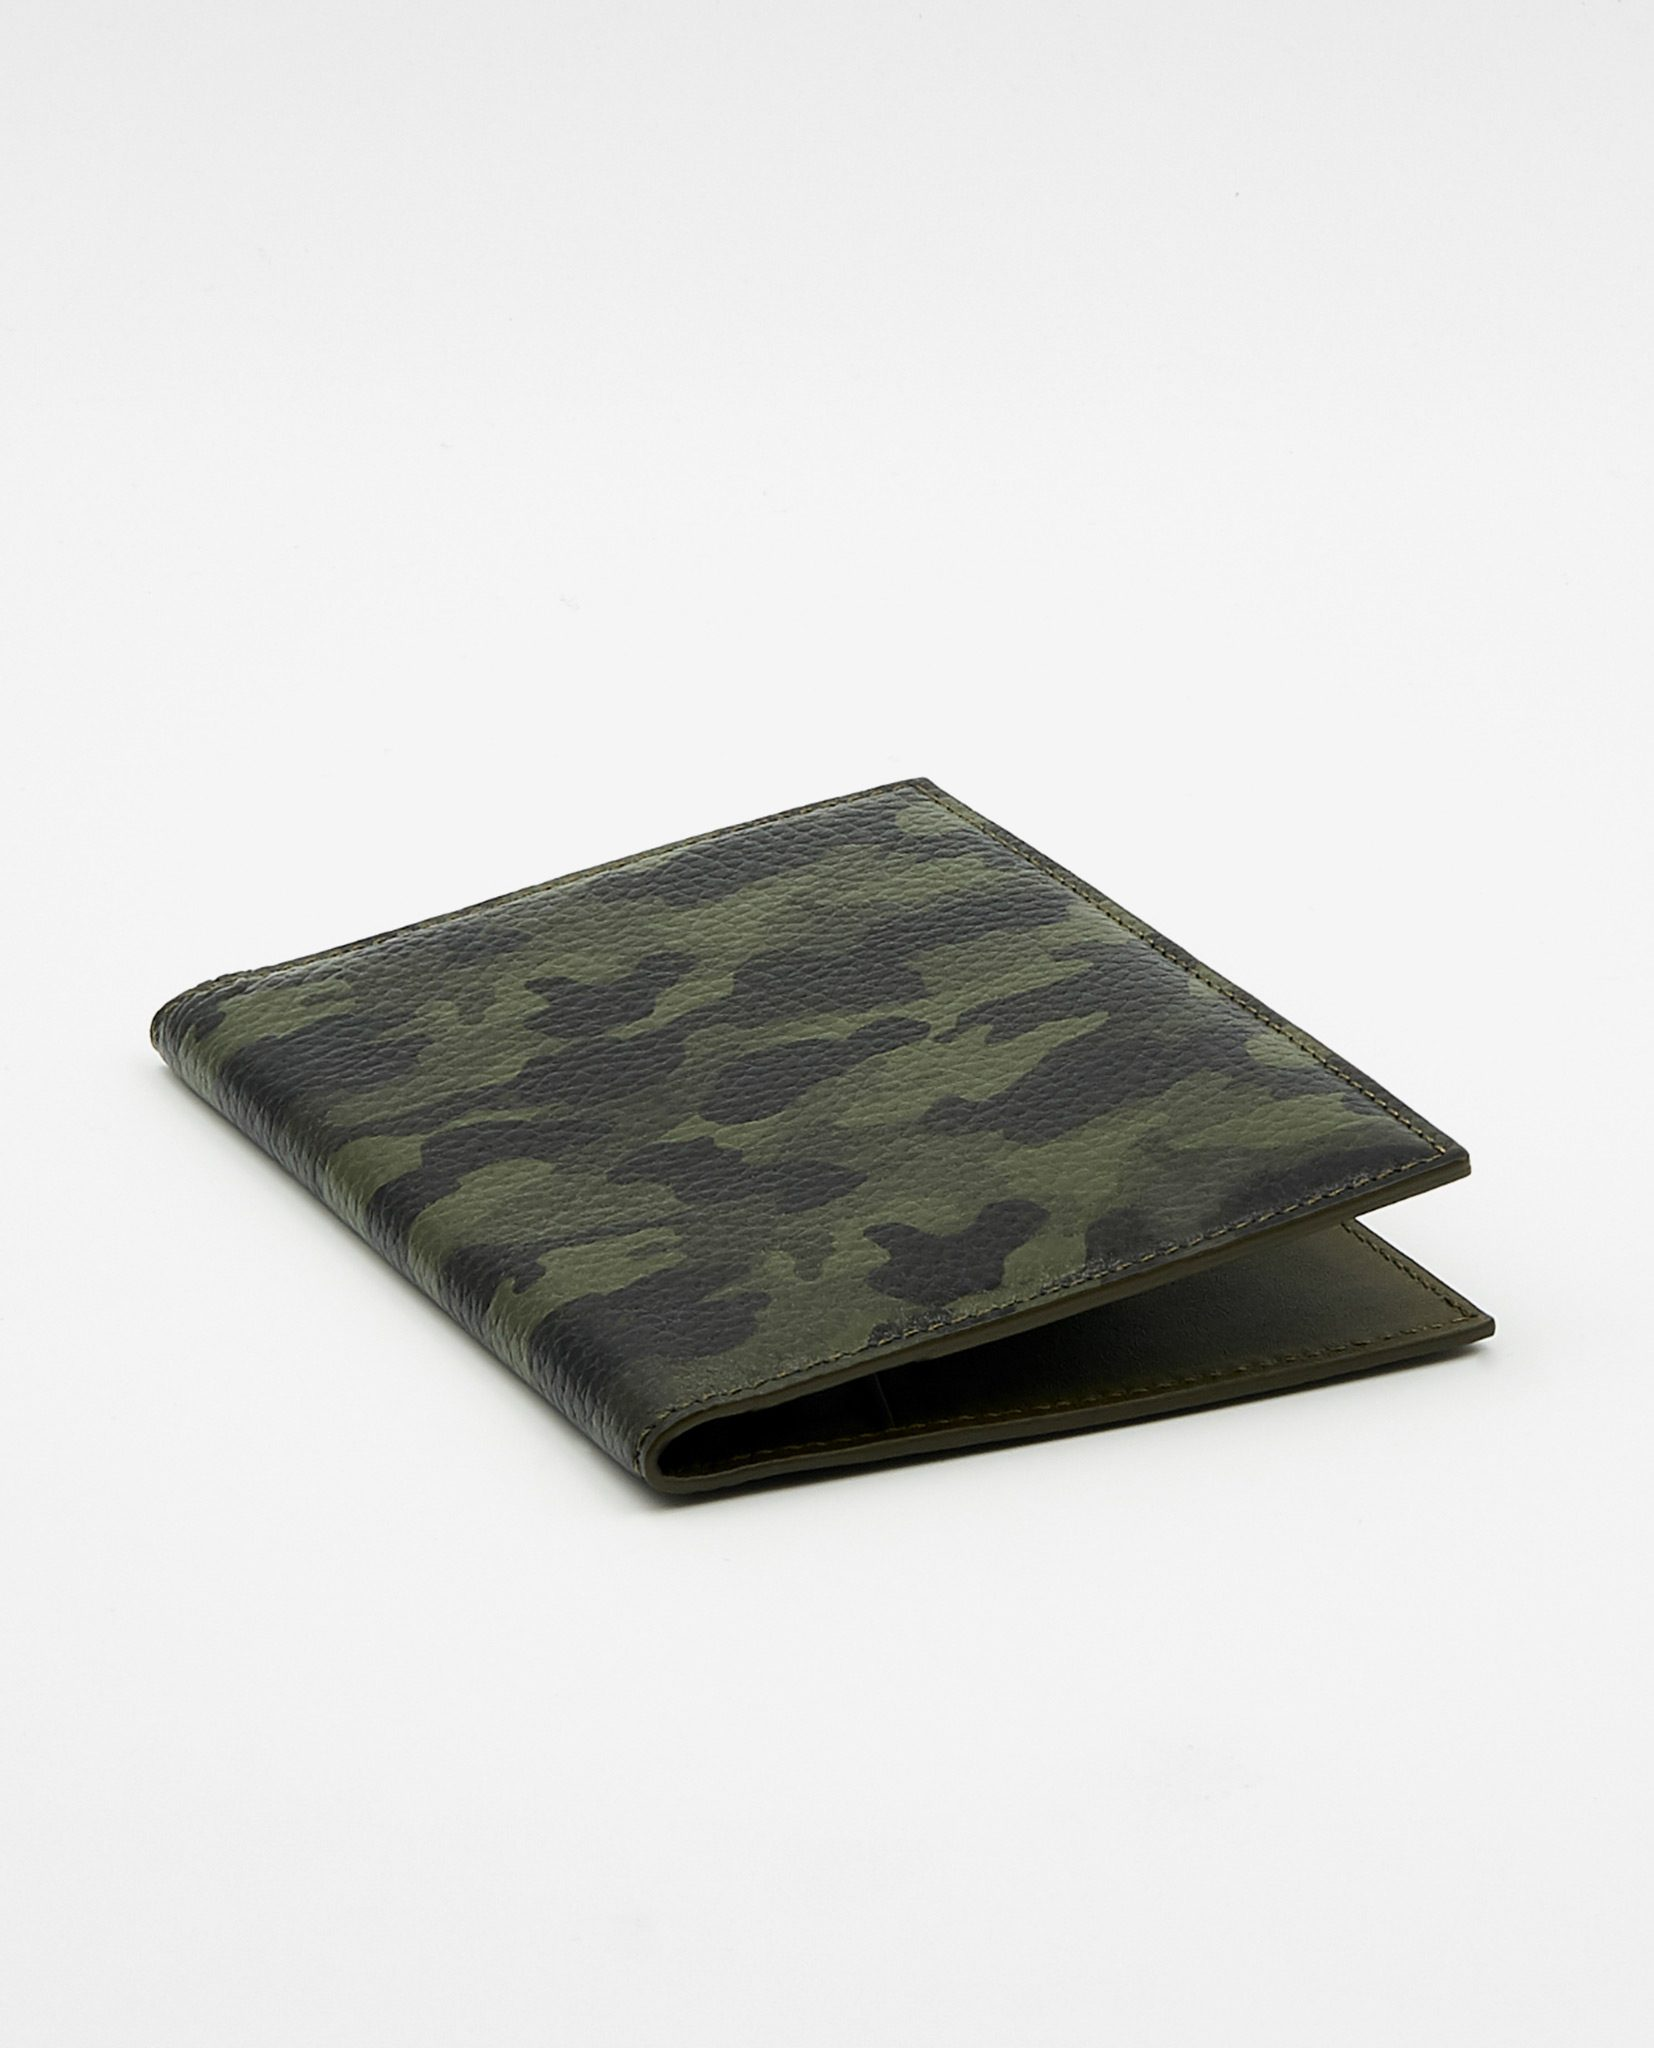 Soofre Grainy Leather Passport Holder Color Camouflage Khaki